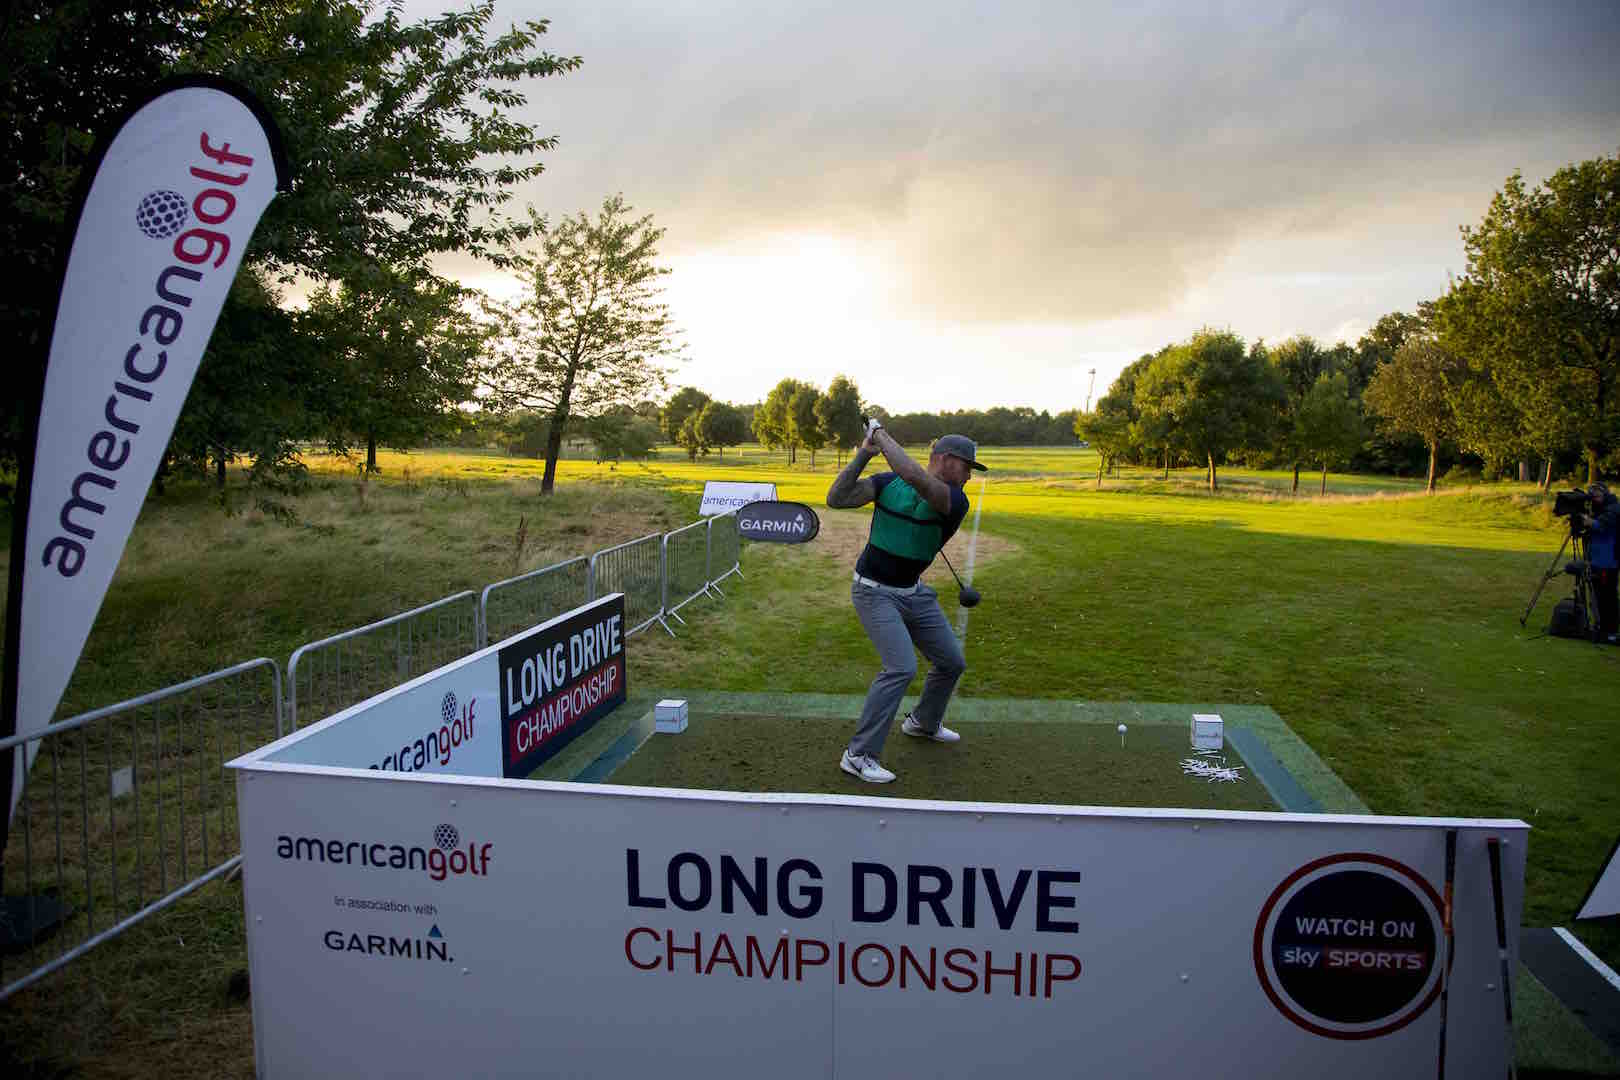 American Golf crowns 2016 long drive champion